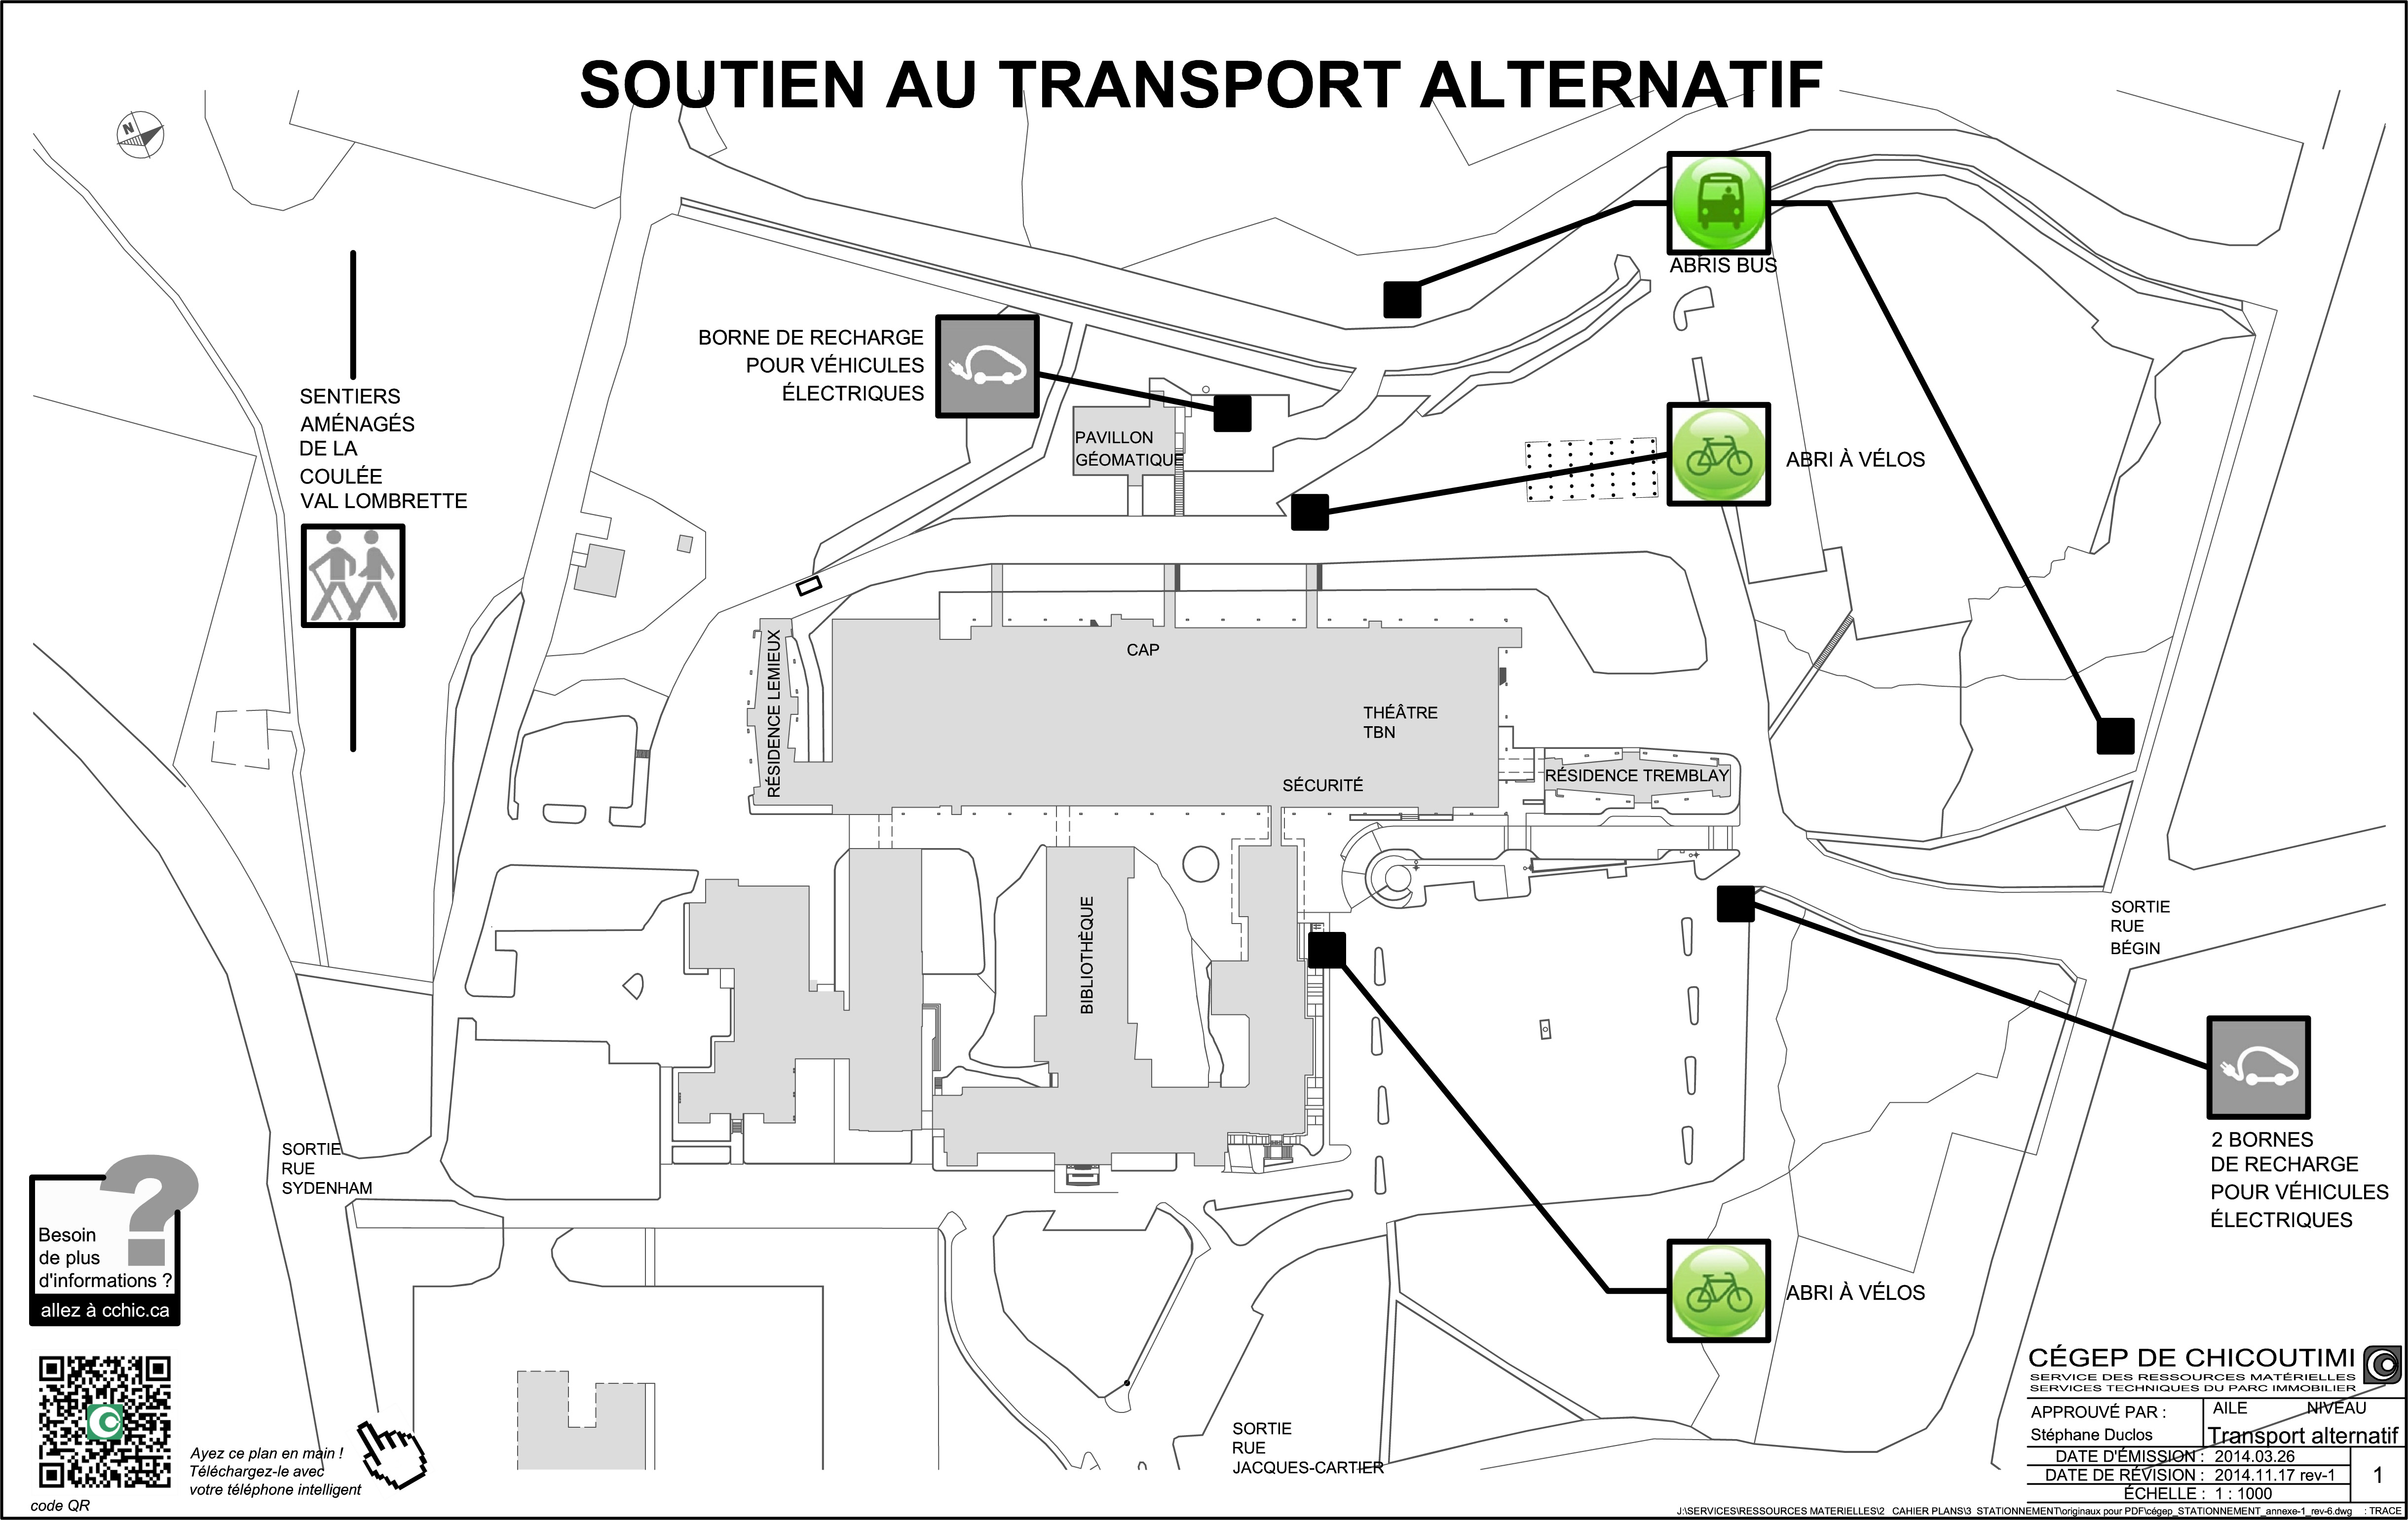 Plan du c gep c gep de chicoutimi for Cegep de chicoutimi piscine